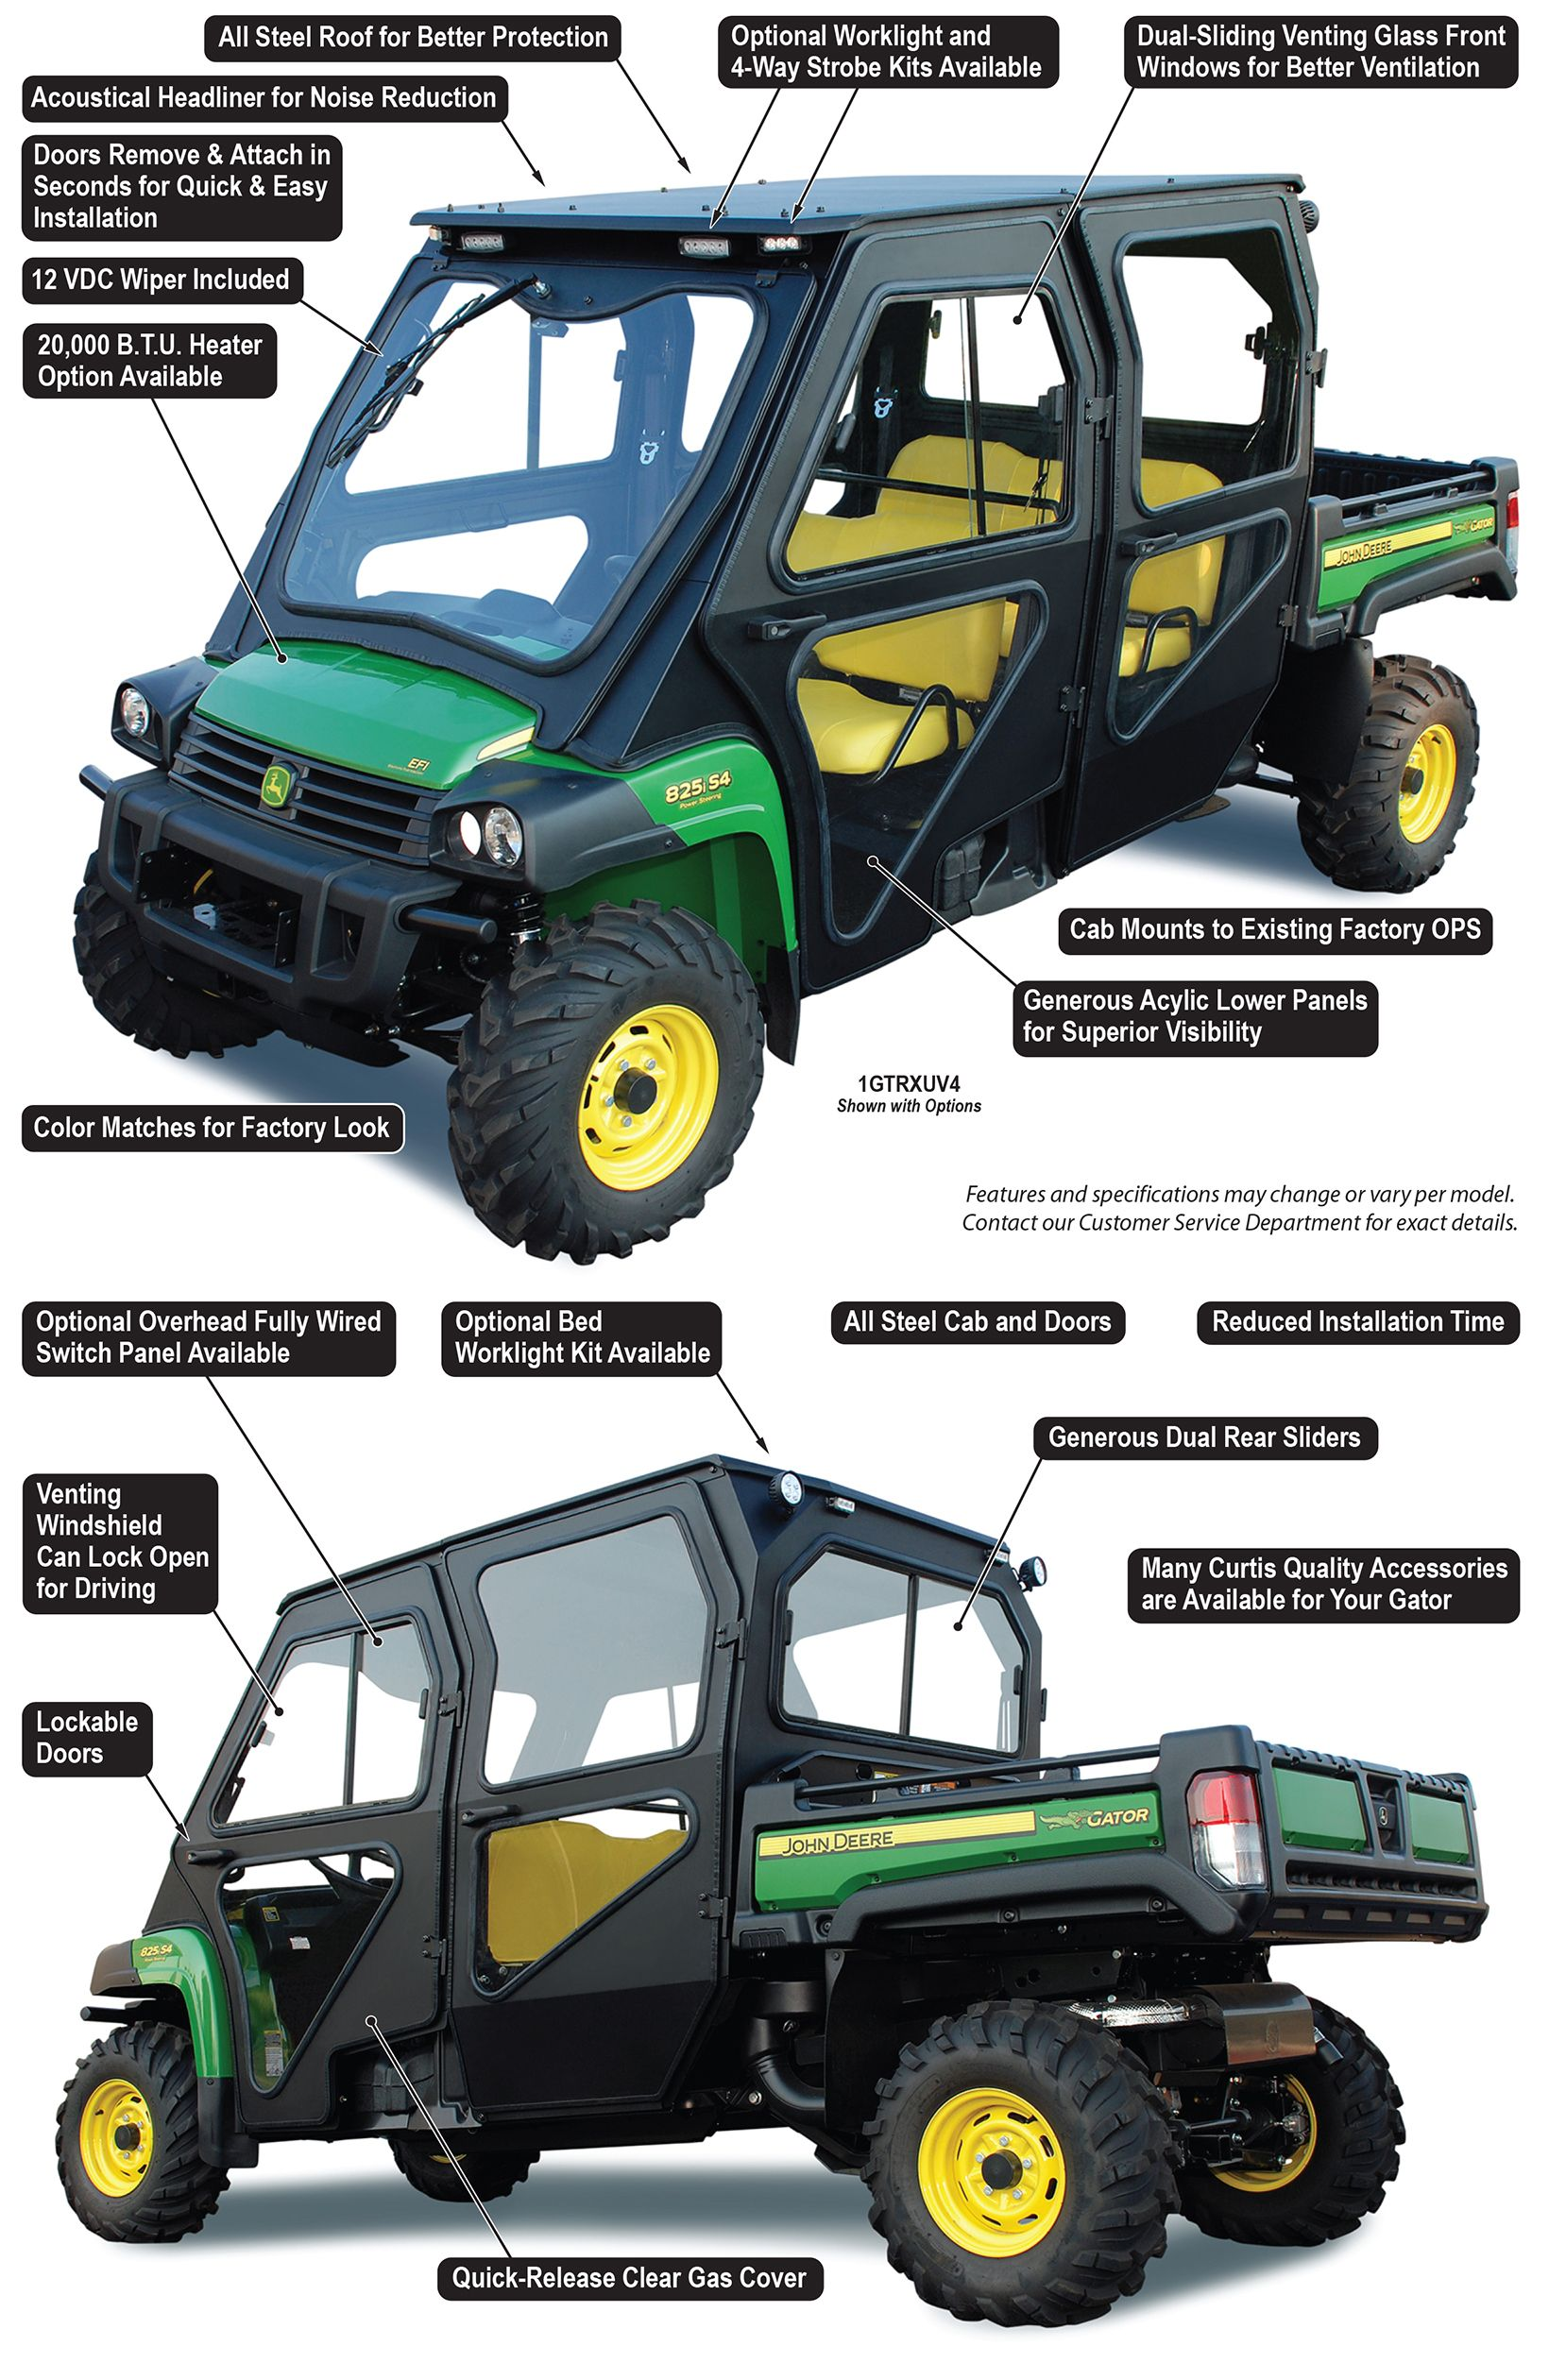 New John Deere Gator XUV 825i S4 All-Steel Cab